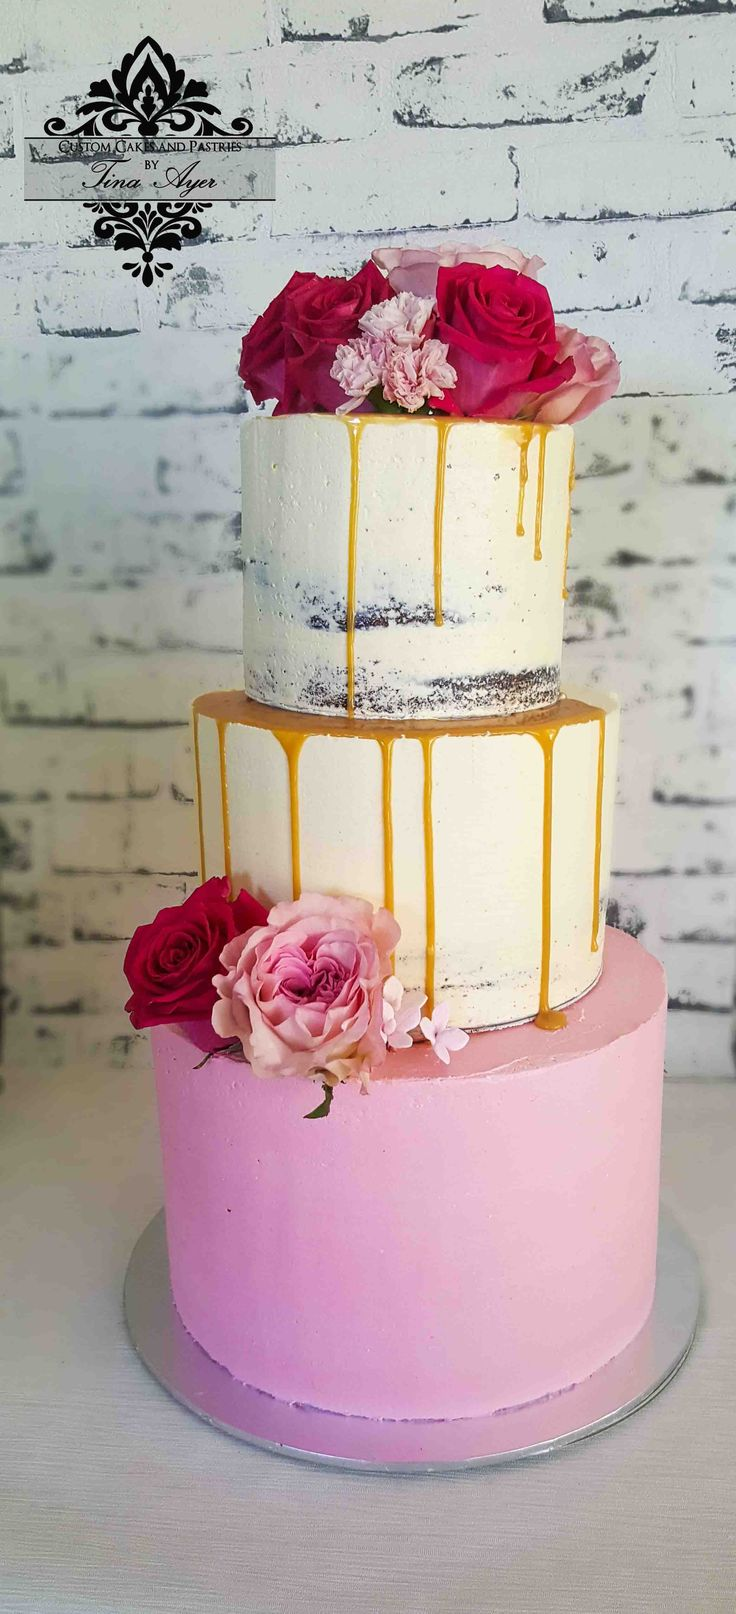 80 best Custom Cakes and Pastries by Tina Ayer images on Pinterest ...